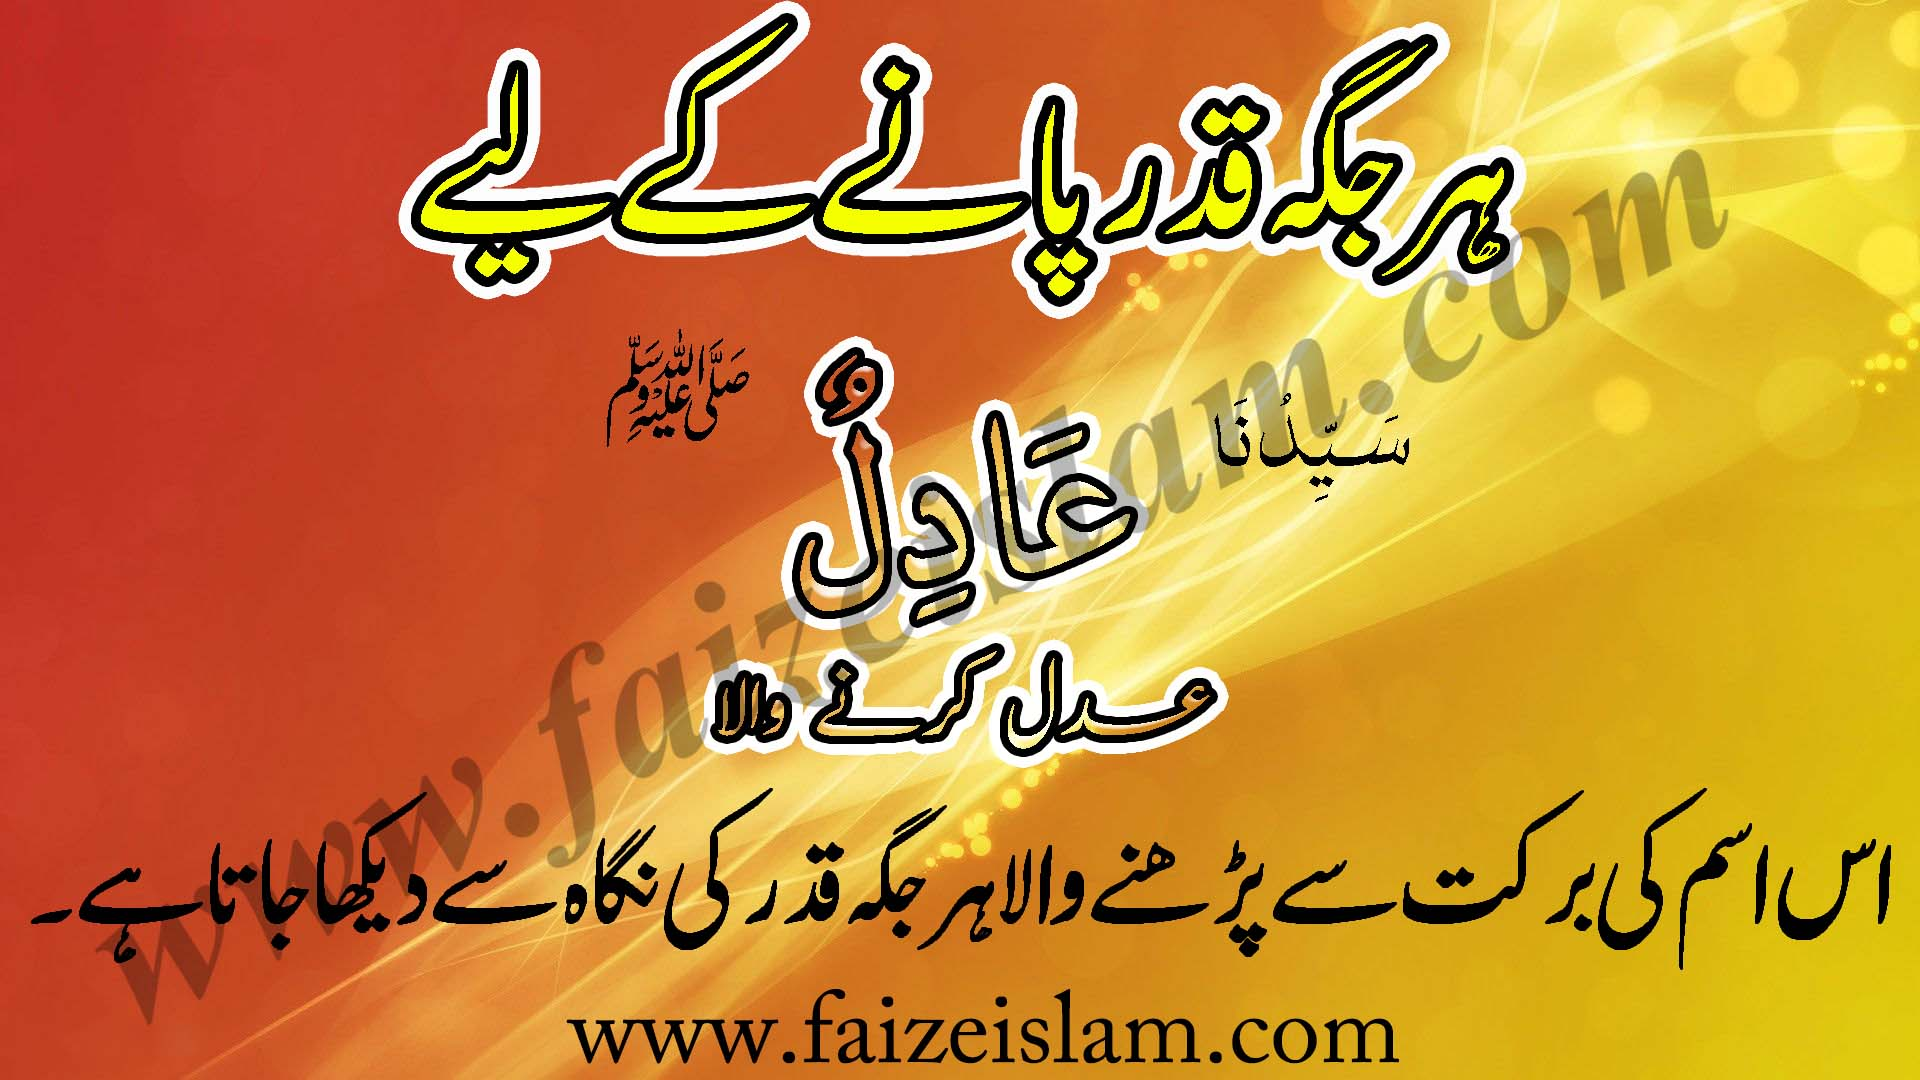 Photo of Har Jaga Qadar Panay Kay Liye Wazifa In Urdu